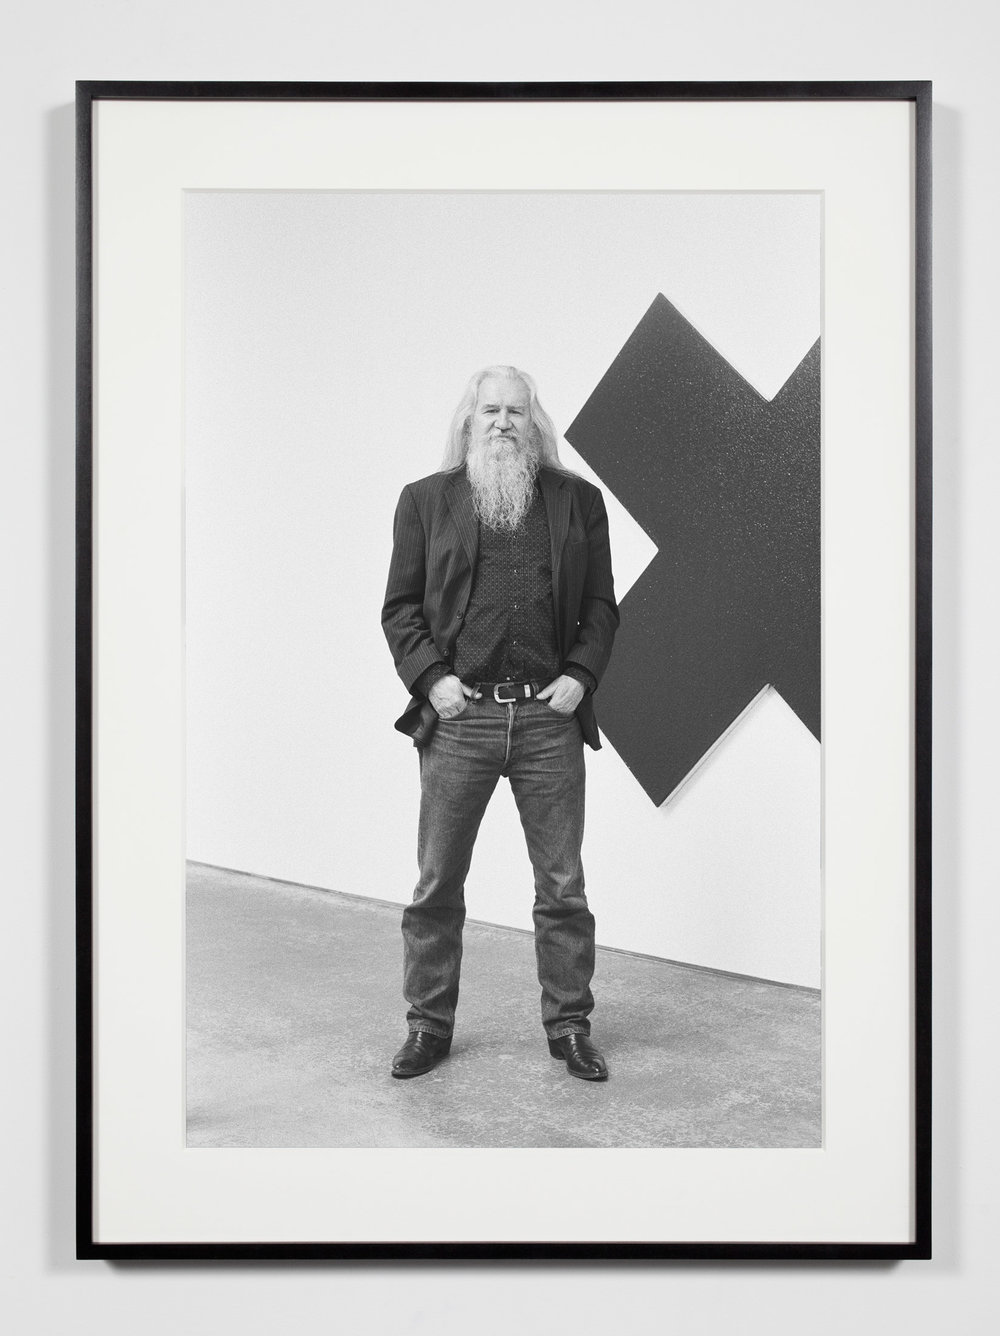 Artist, Santa Monica, California, April 11, 2009   2011  Epson Ultrachrome K3 archival ink jet print on Hahnemühle Photo Rag paper  36 3/8 x 26 3/8 inches   Industrial Portraits, 2008–    A Diagram of Forces, 2011